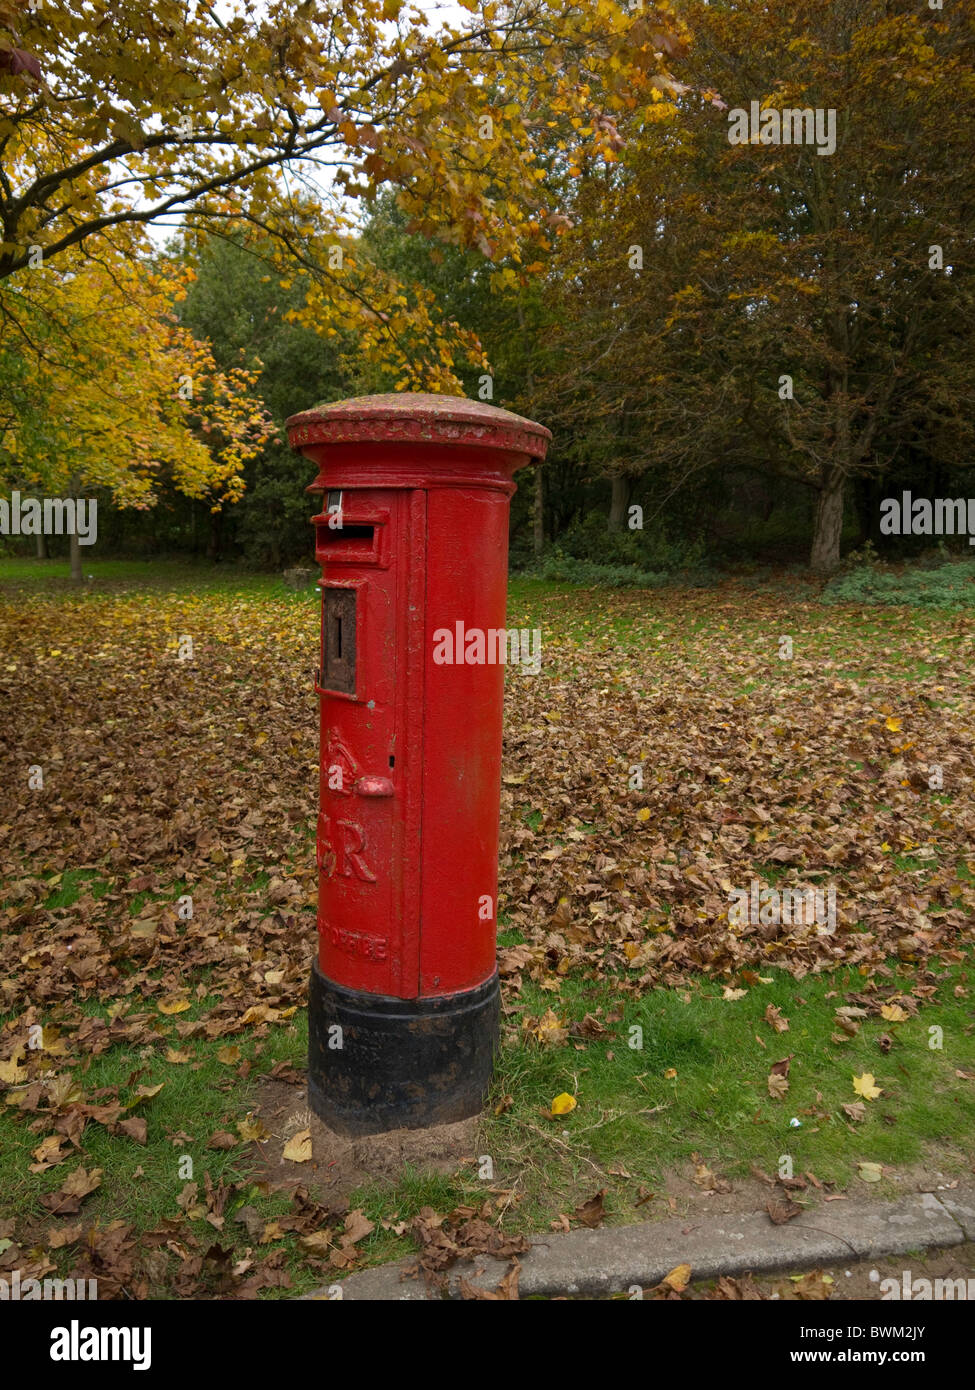 Rural postbox in among the shrubbery and trees - Stock Image